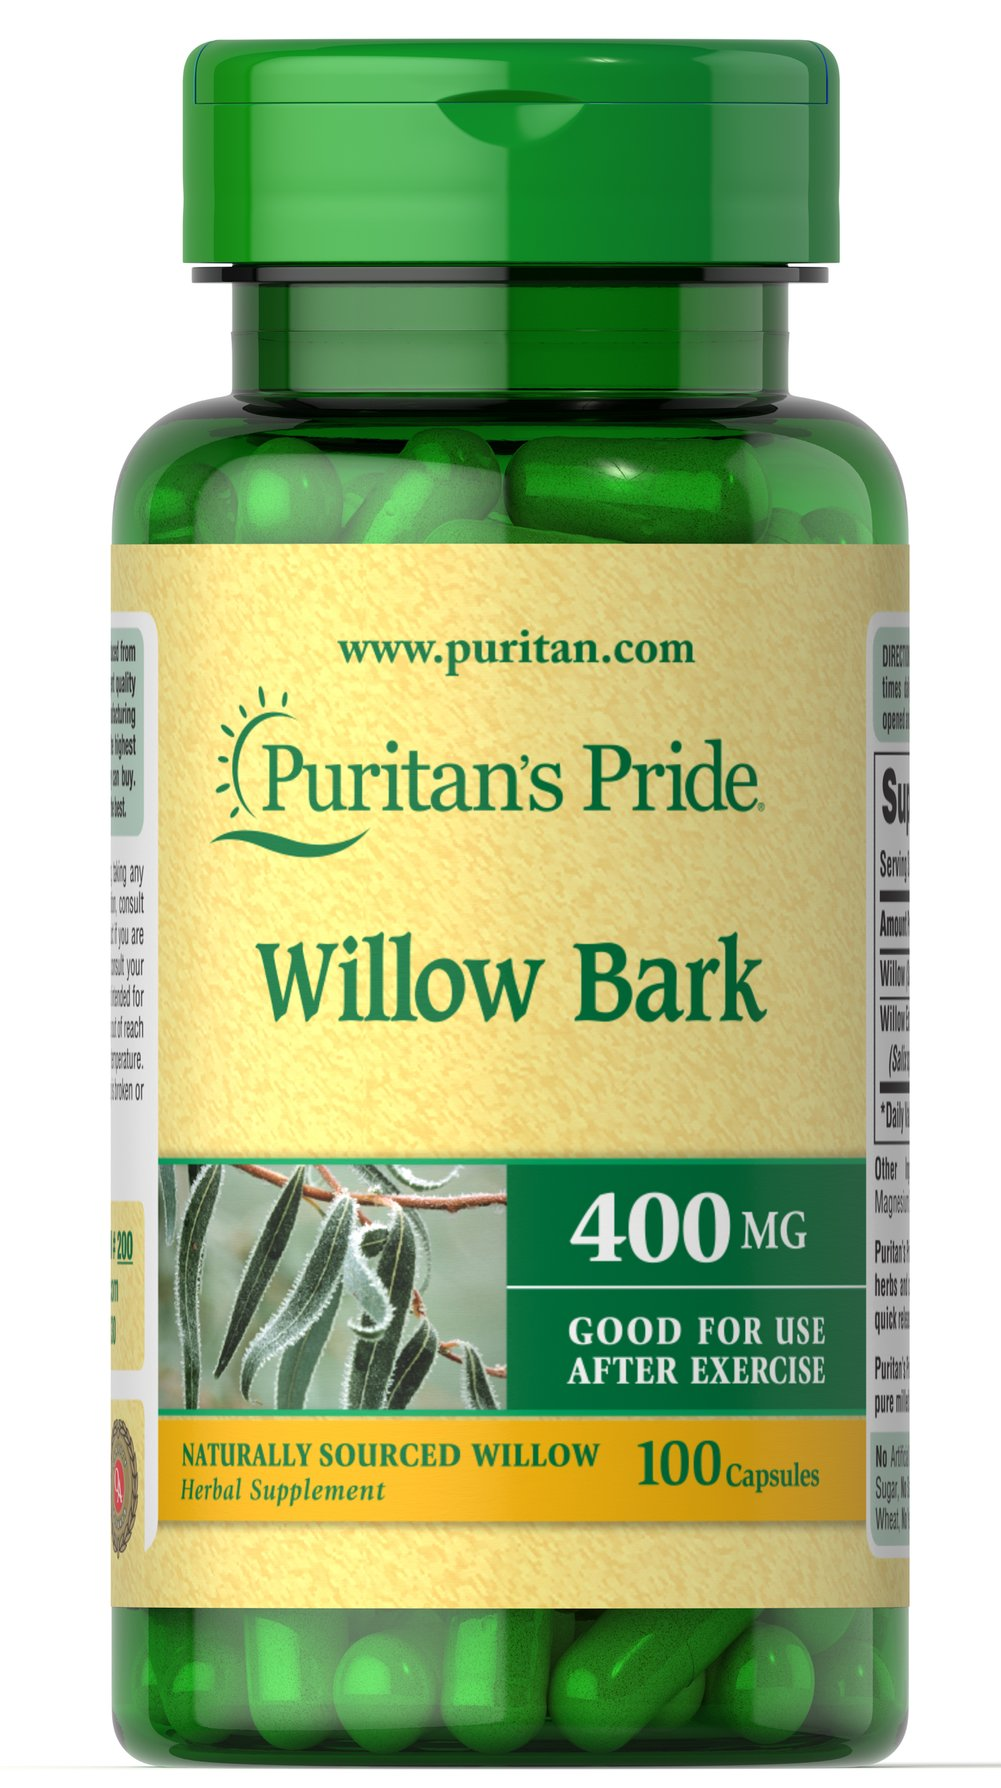 White Willow Bark 400 mg <p>Good for Minor Muscle Pain After Exercise**</p> 100 Capsules 400 mg $9.99